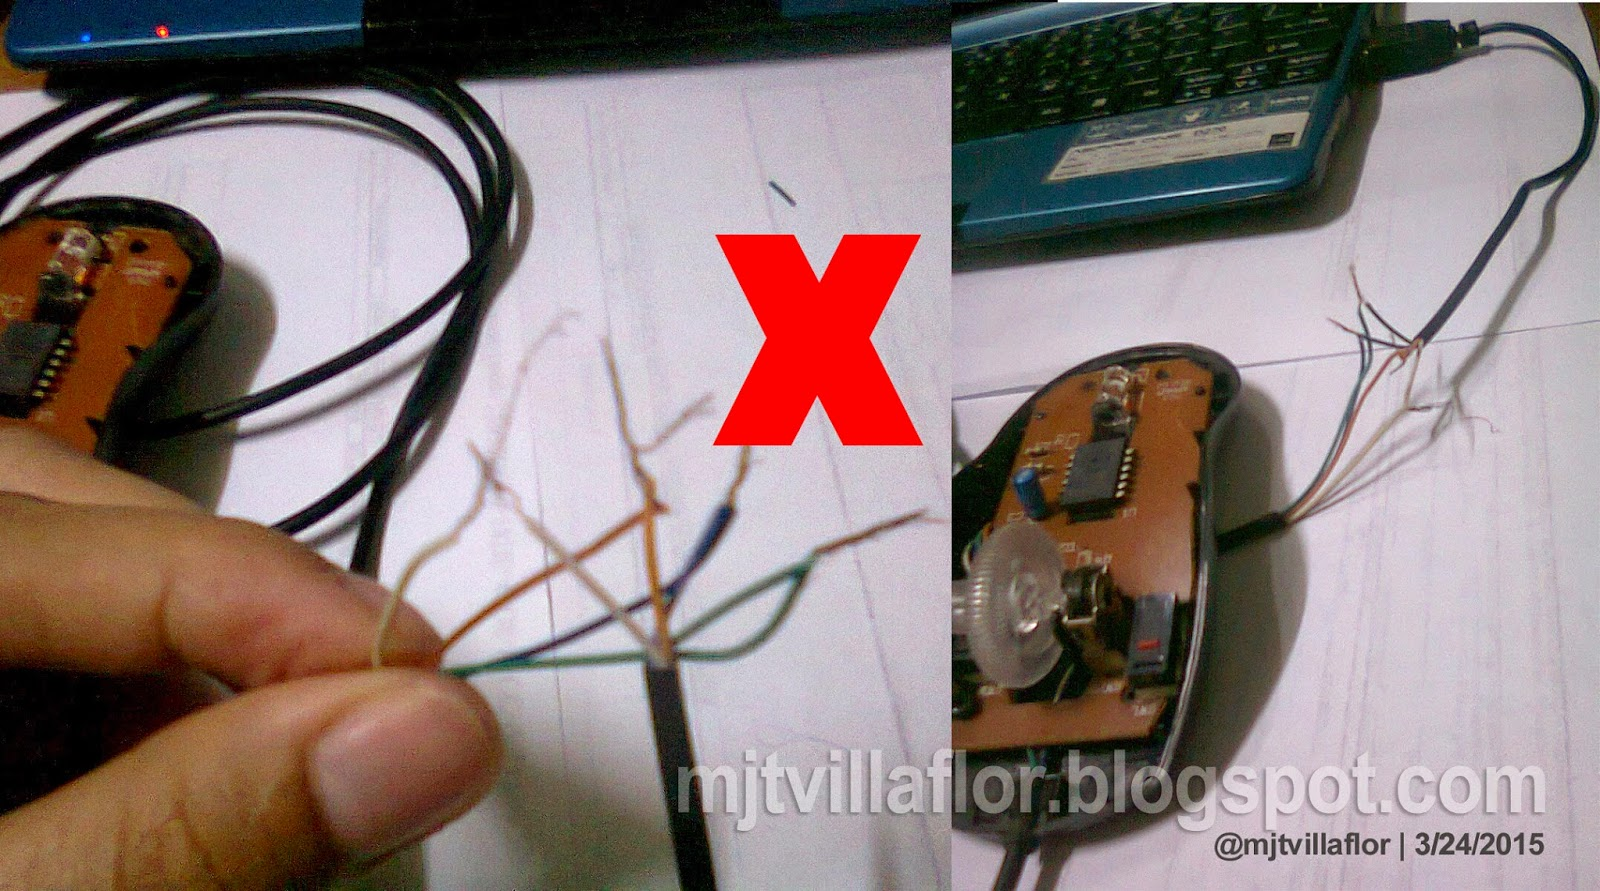 Usb To Ps2 Mouse Wiring Diagram Bose Home Theatre Troubleshooting Mjtvillaflor